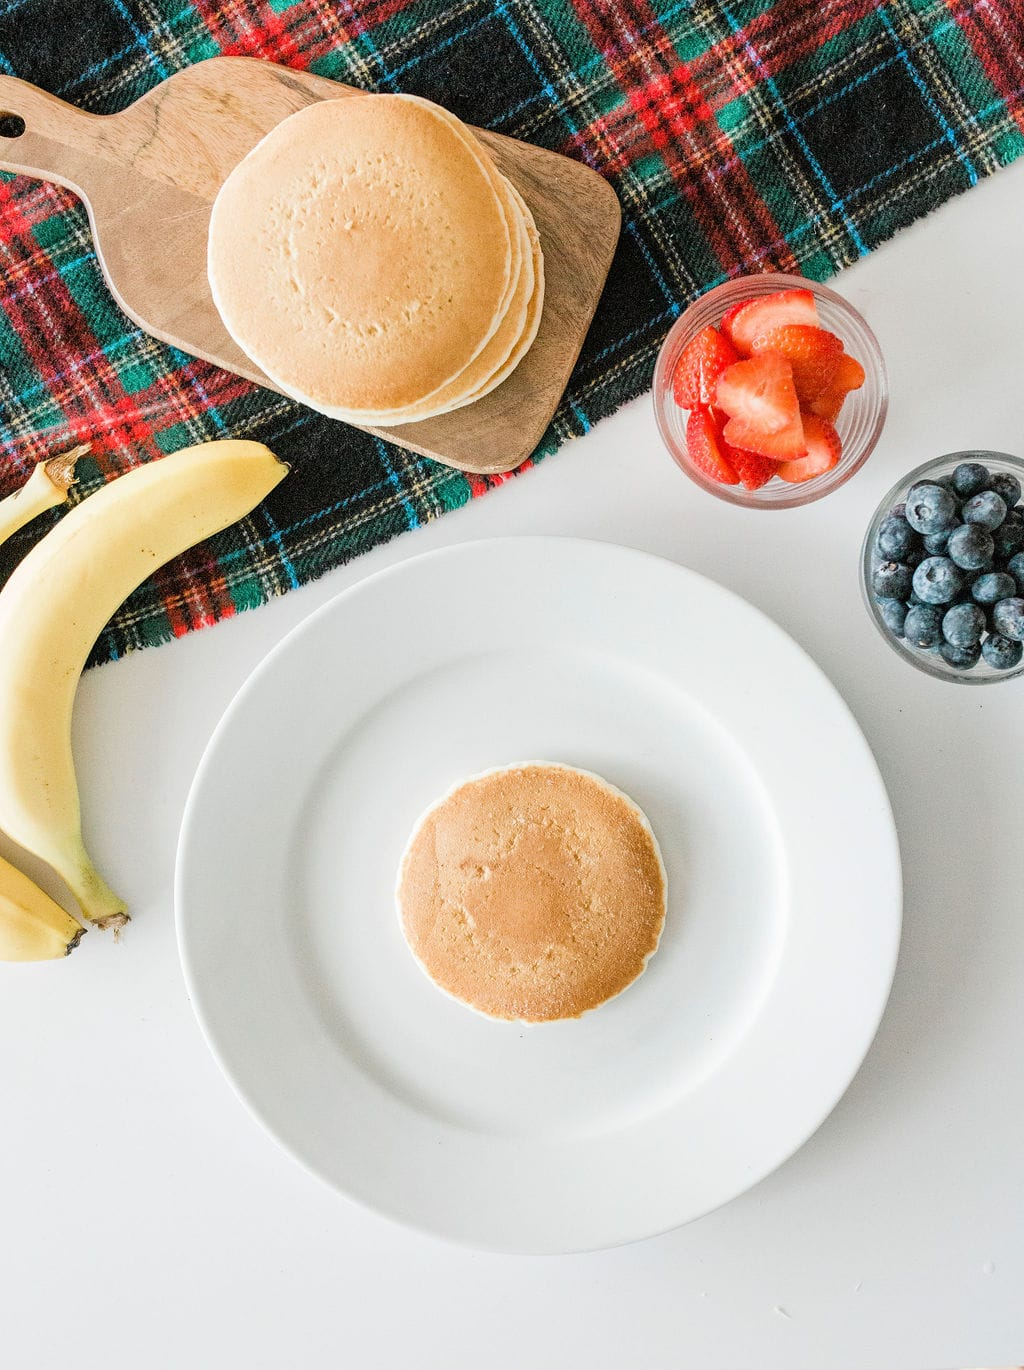 fruit on pancakes